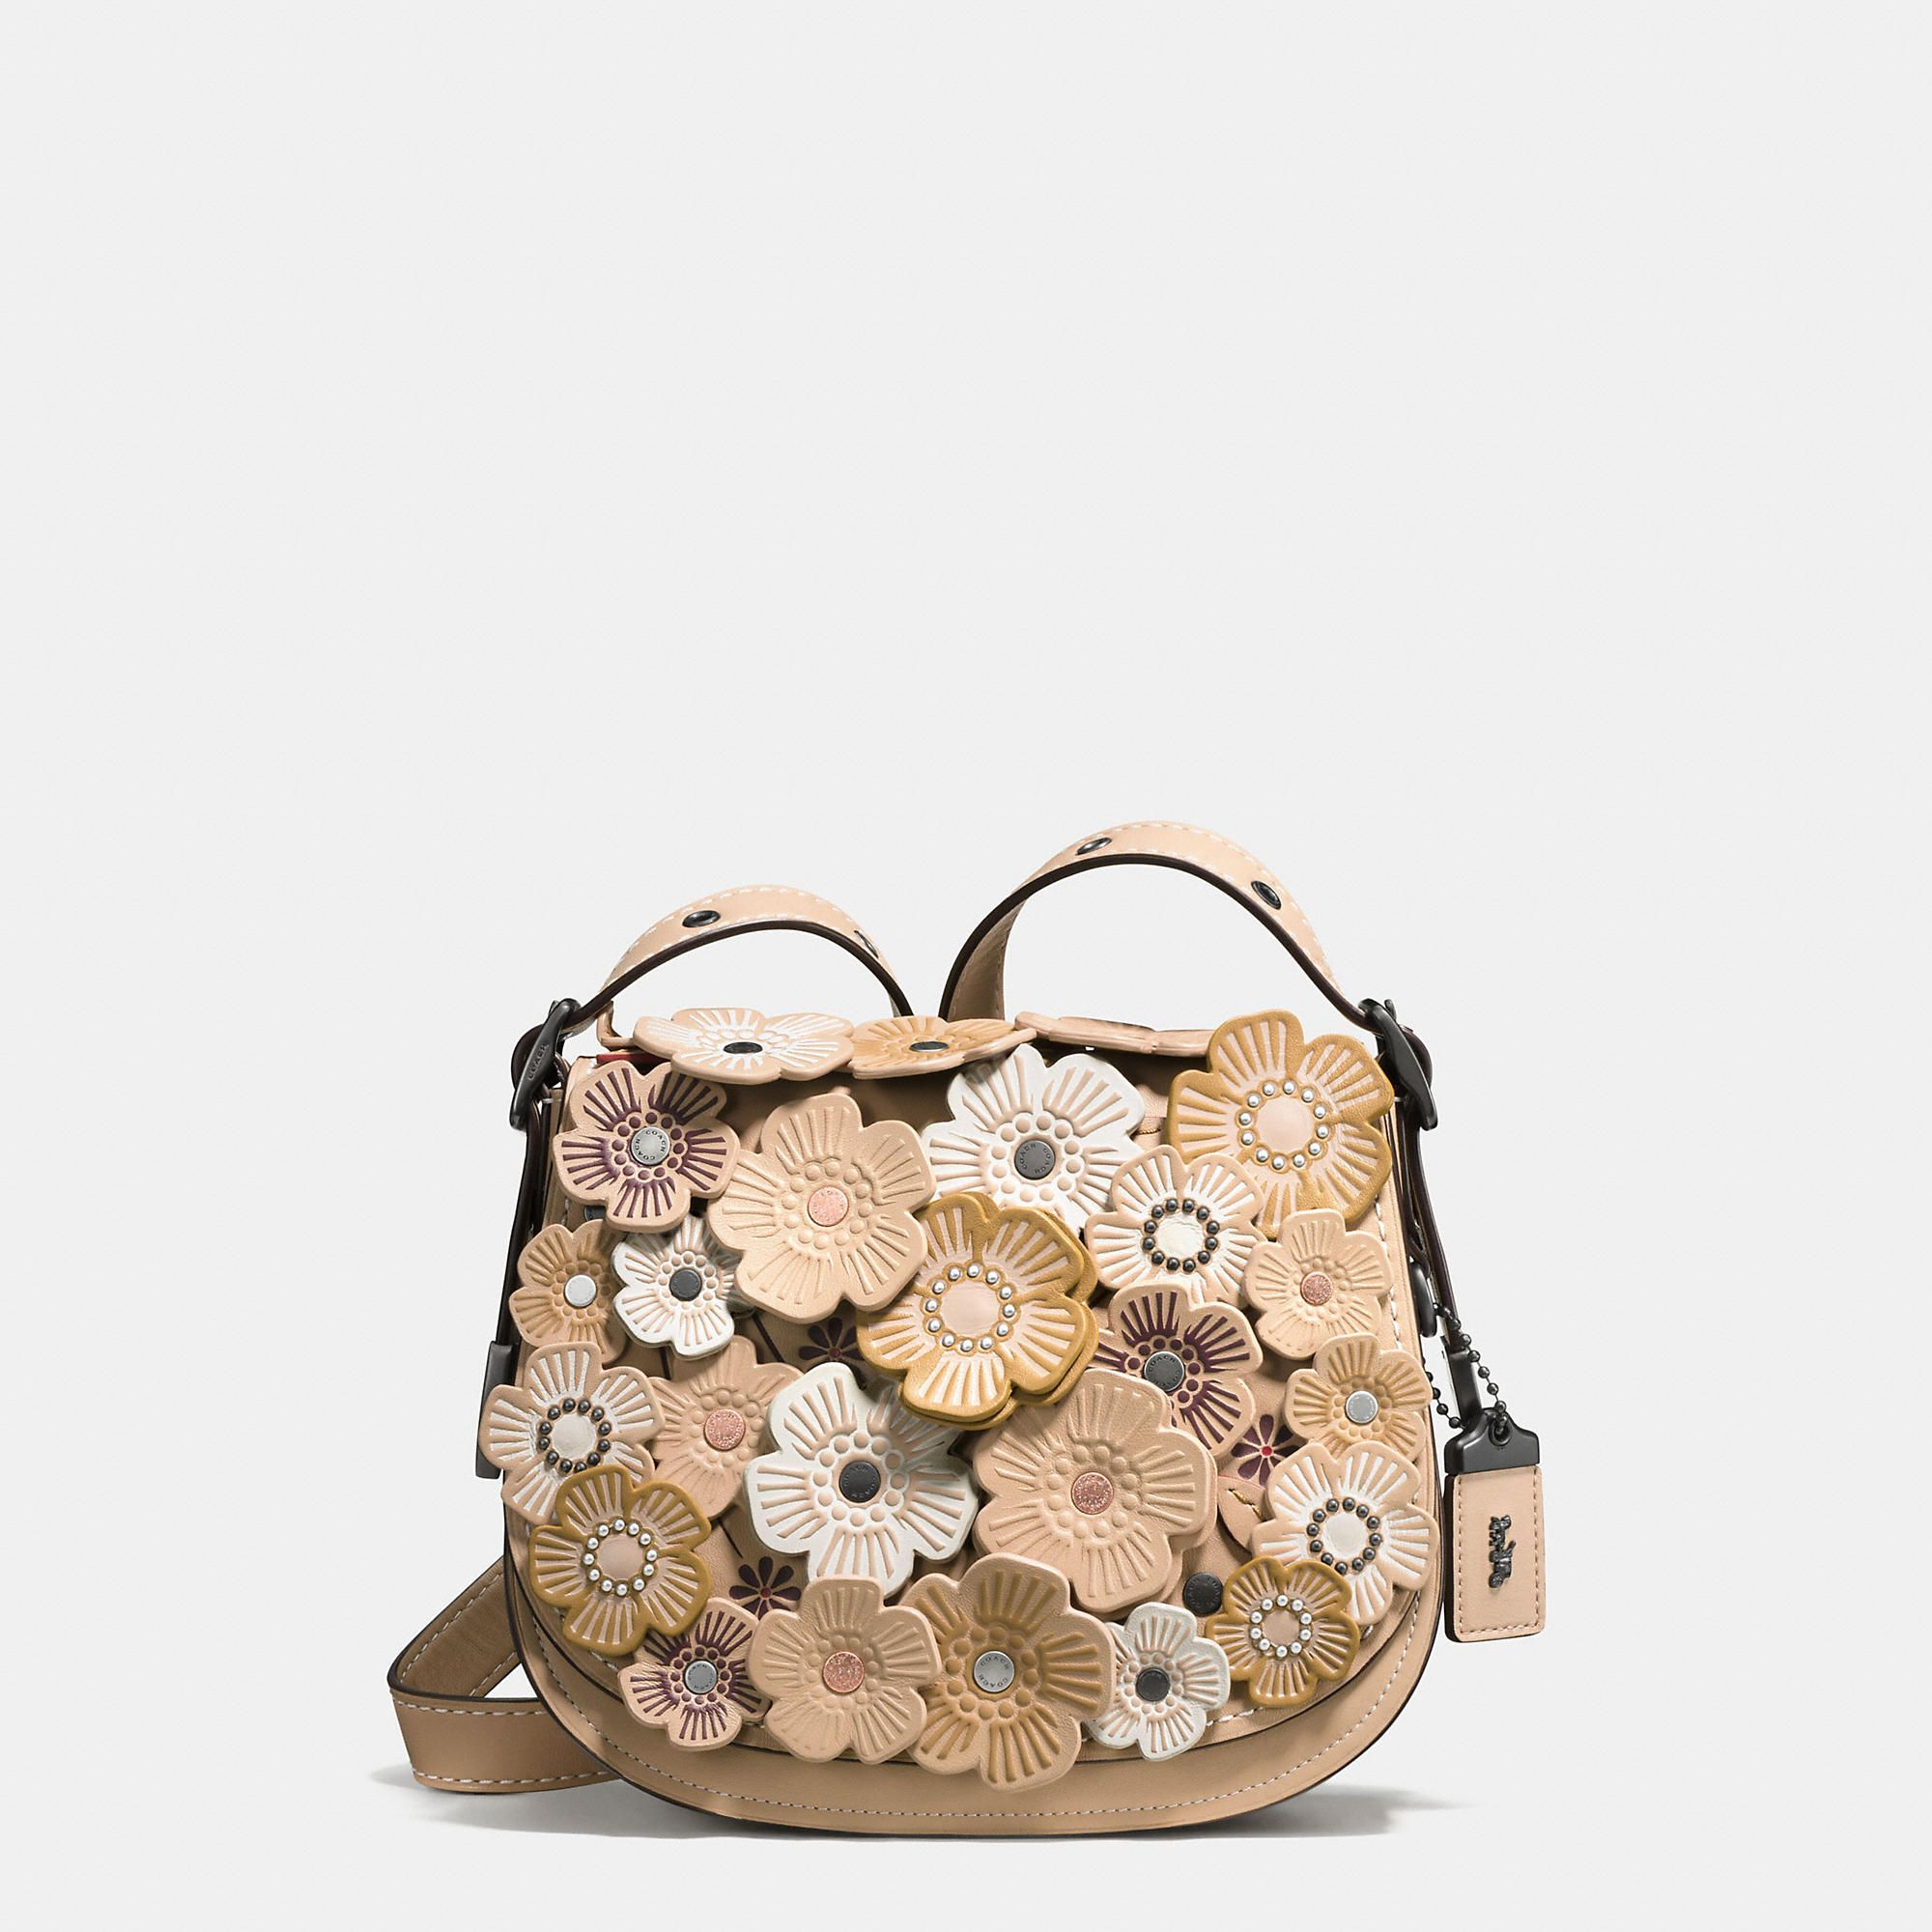 d9a34f6c76 Shop The COACH Tea Rose Applique Saddle Bag 23 In Leather. Enjoy  Complimentary Shipping   Returns! Find Designer Bags